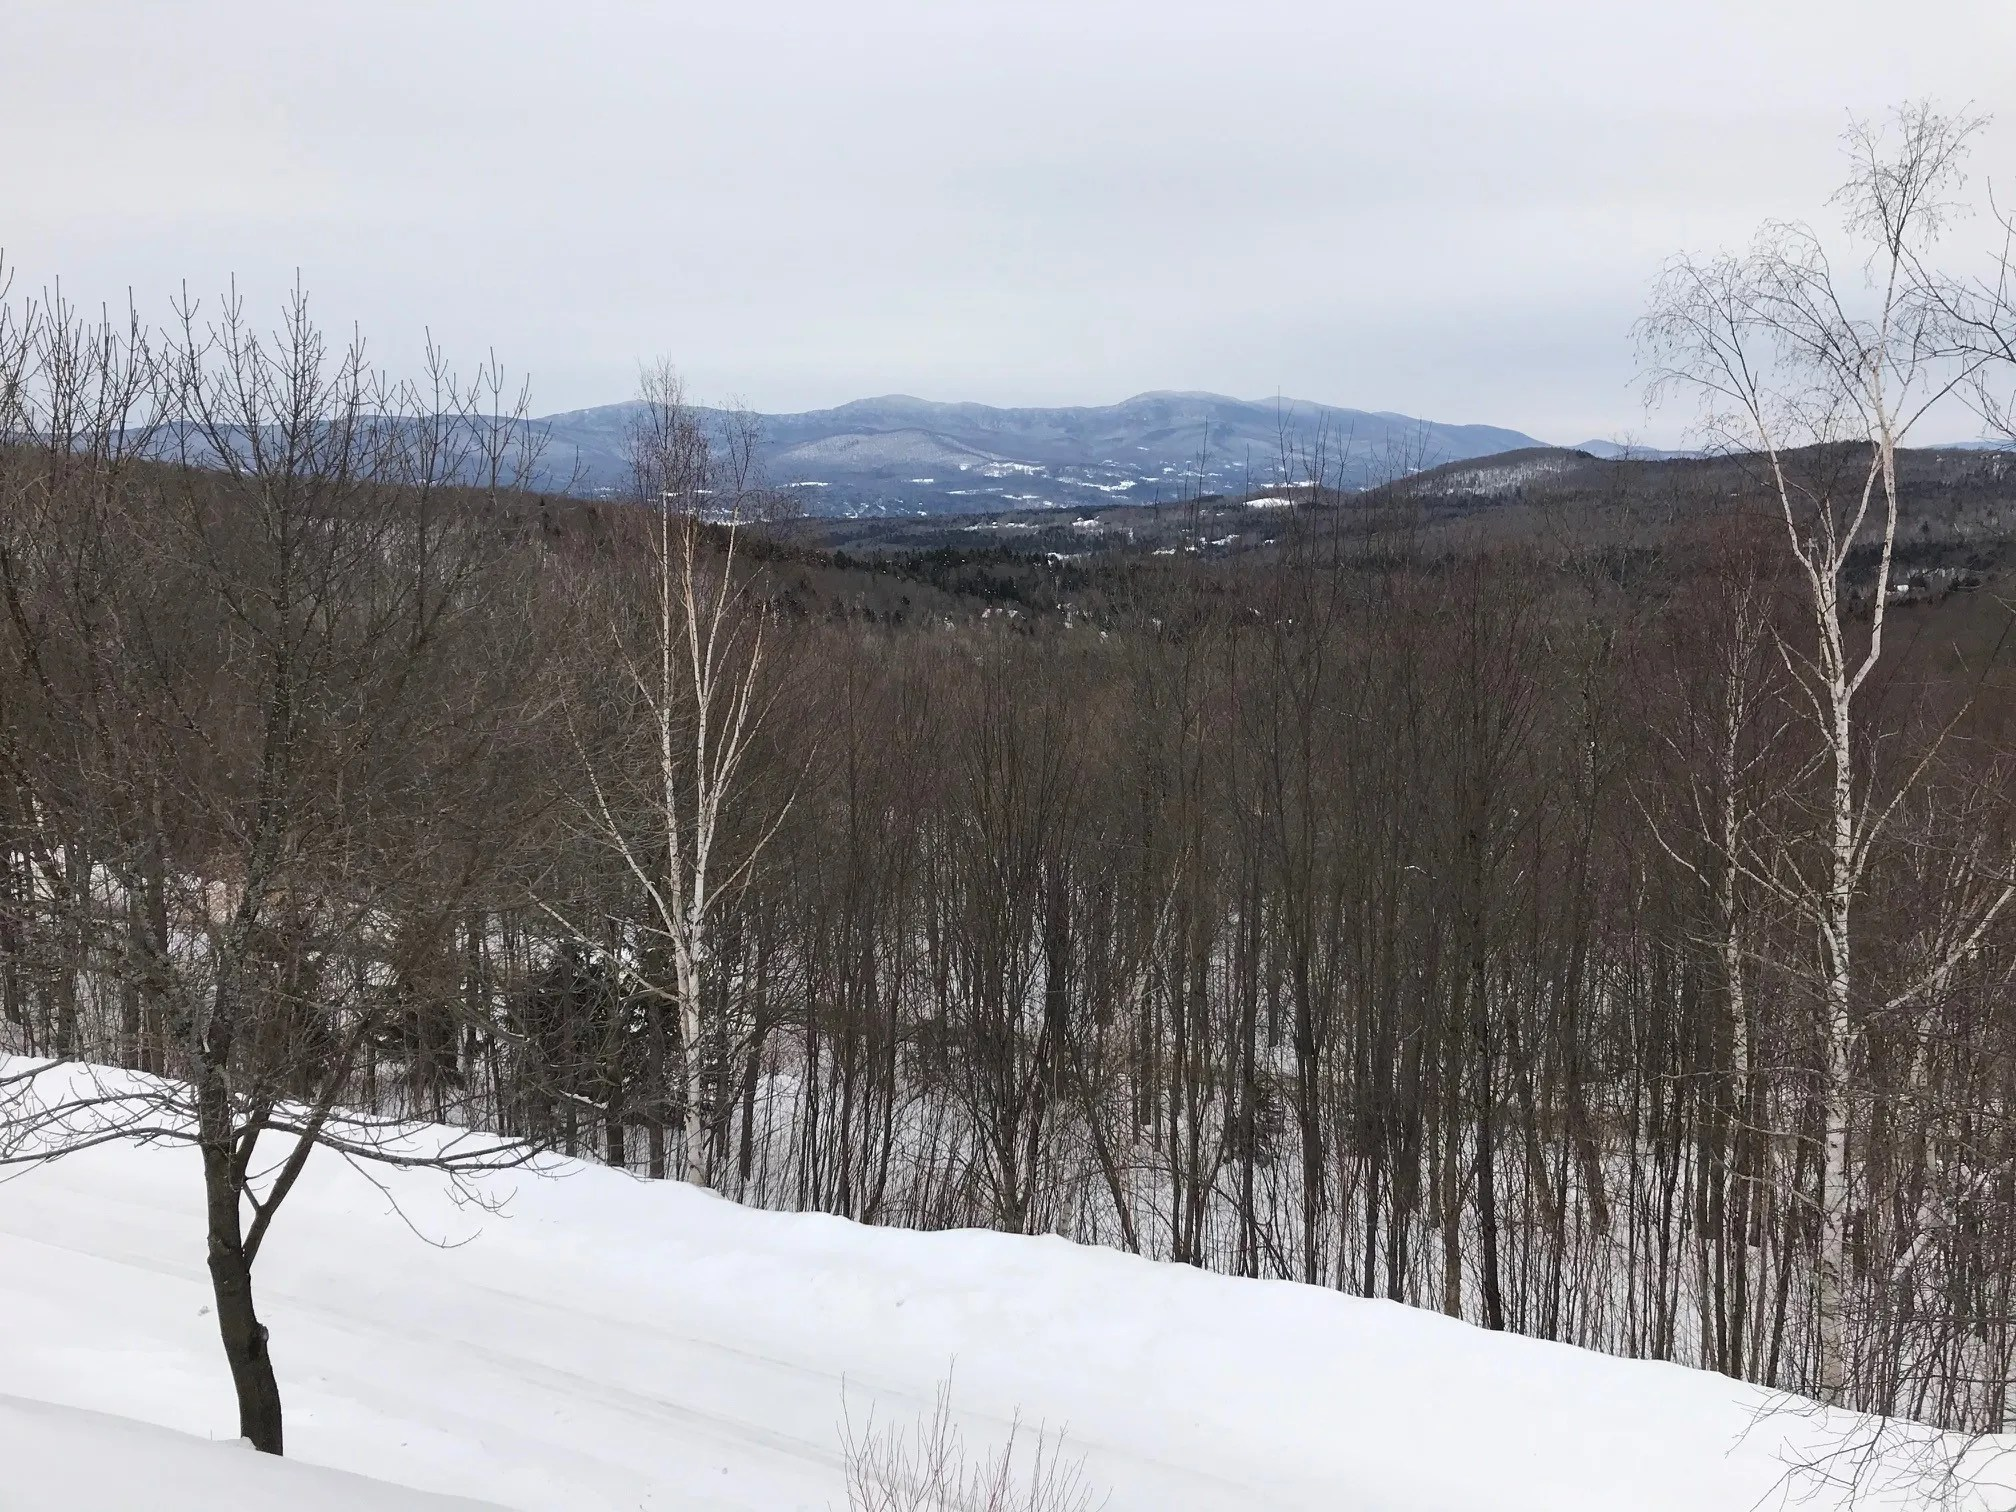 The spectacular view from Mike Krancer's home atop Bull Moose Ridge Road in Stowe, Vermont on February 18, 2021.